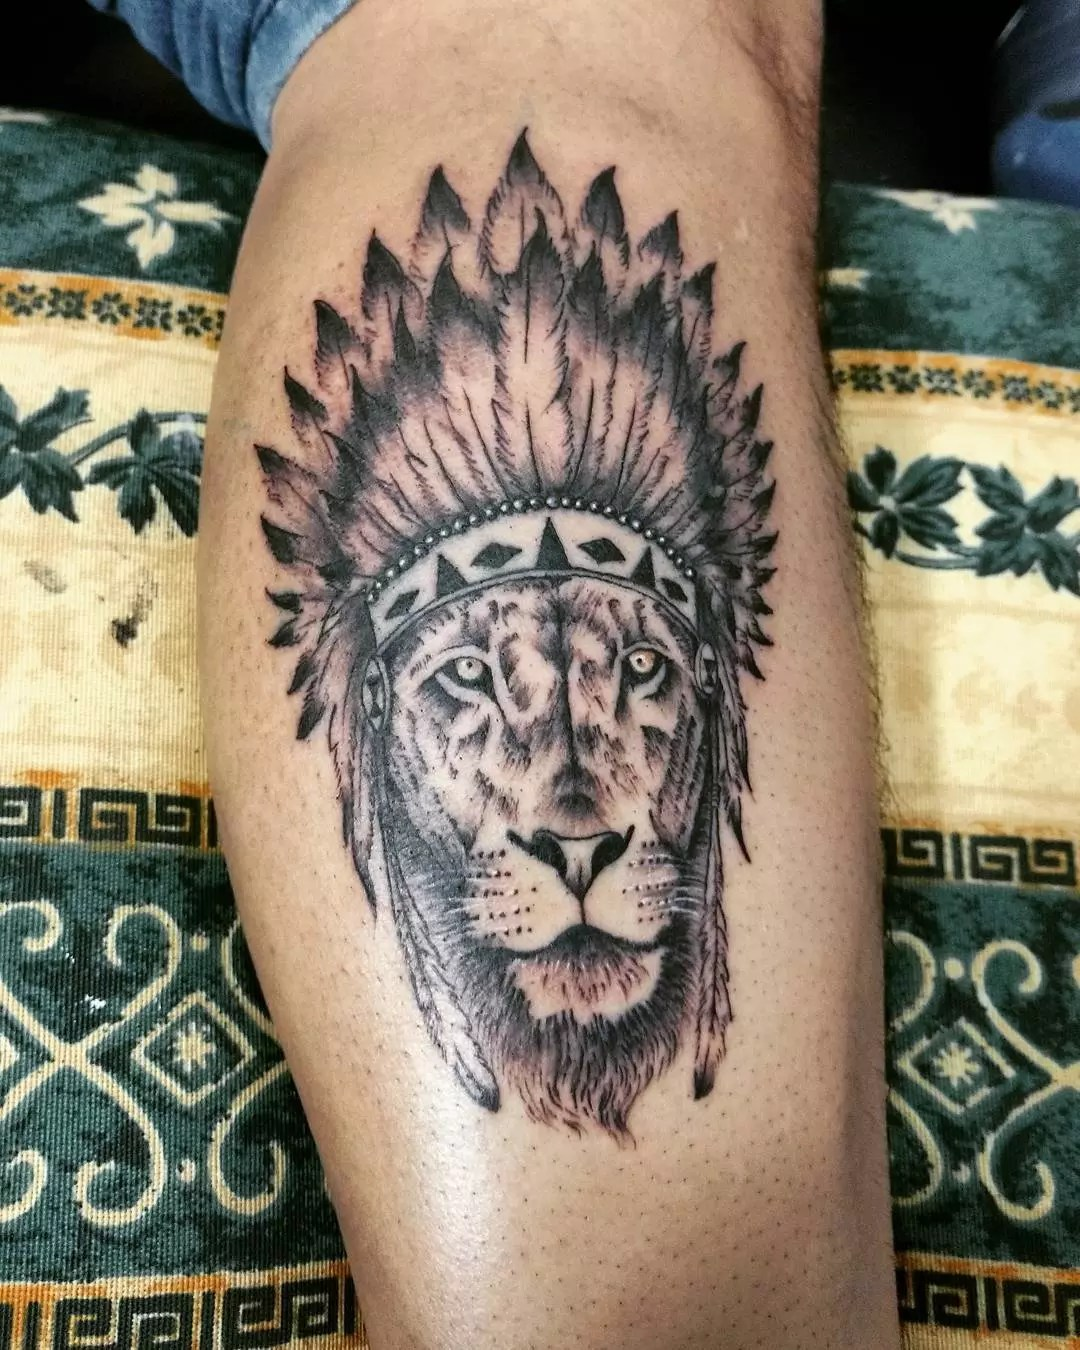 Small Mexican Tattoos : small, mexican, tattoos, Mexican, Tattoo, Designs, Meanings, (2019)